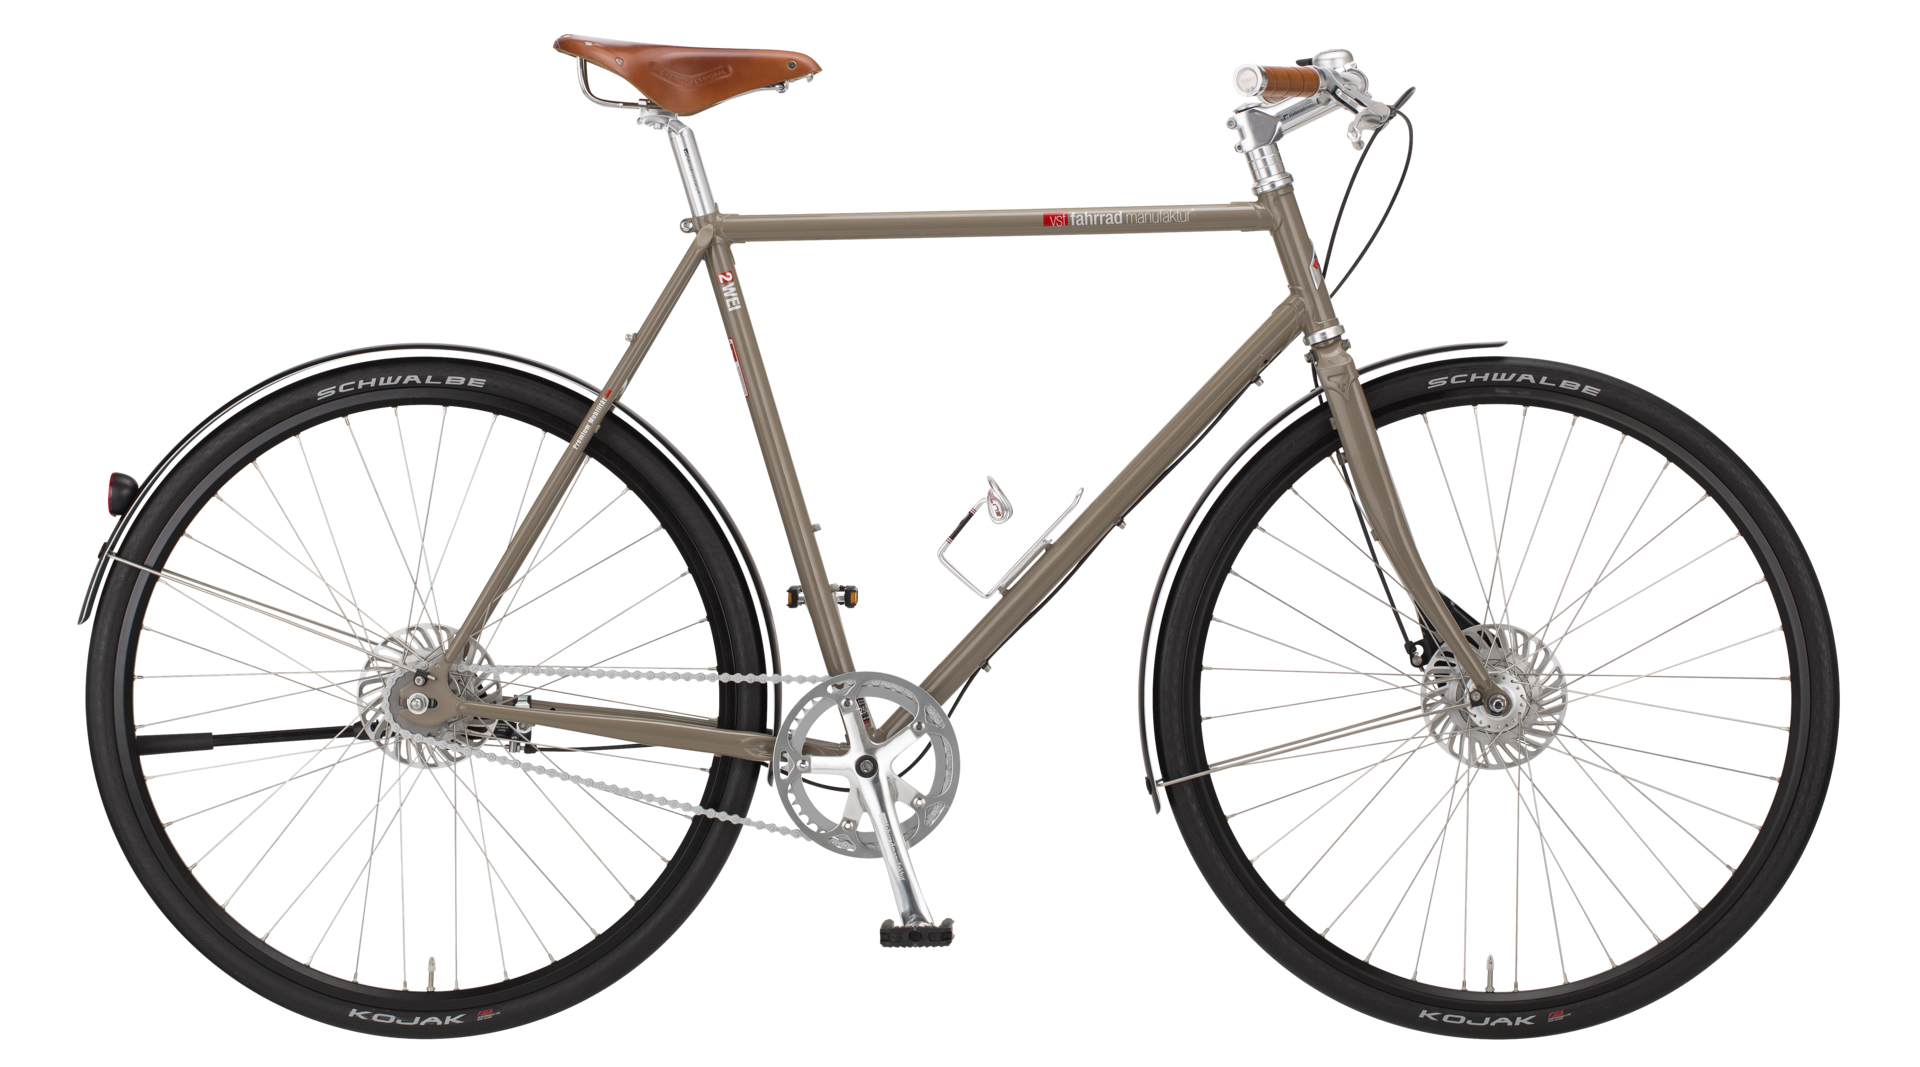 5e6318723cc Urban Bike, Bicycle Design, Retro Bike, Vintage Bicycles, Vehicles, Sports,